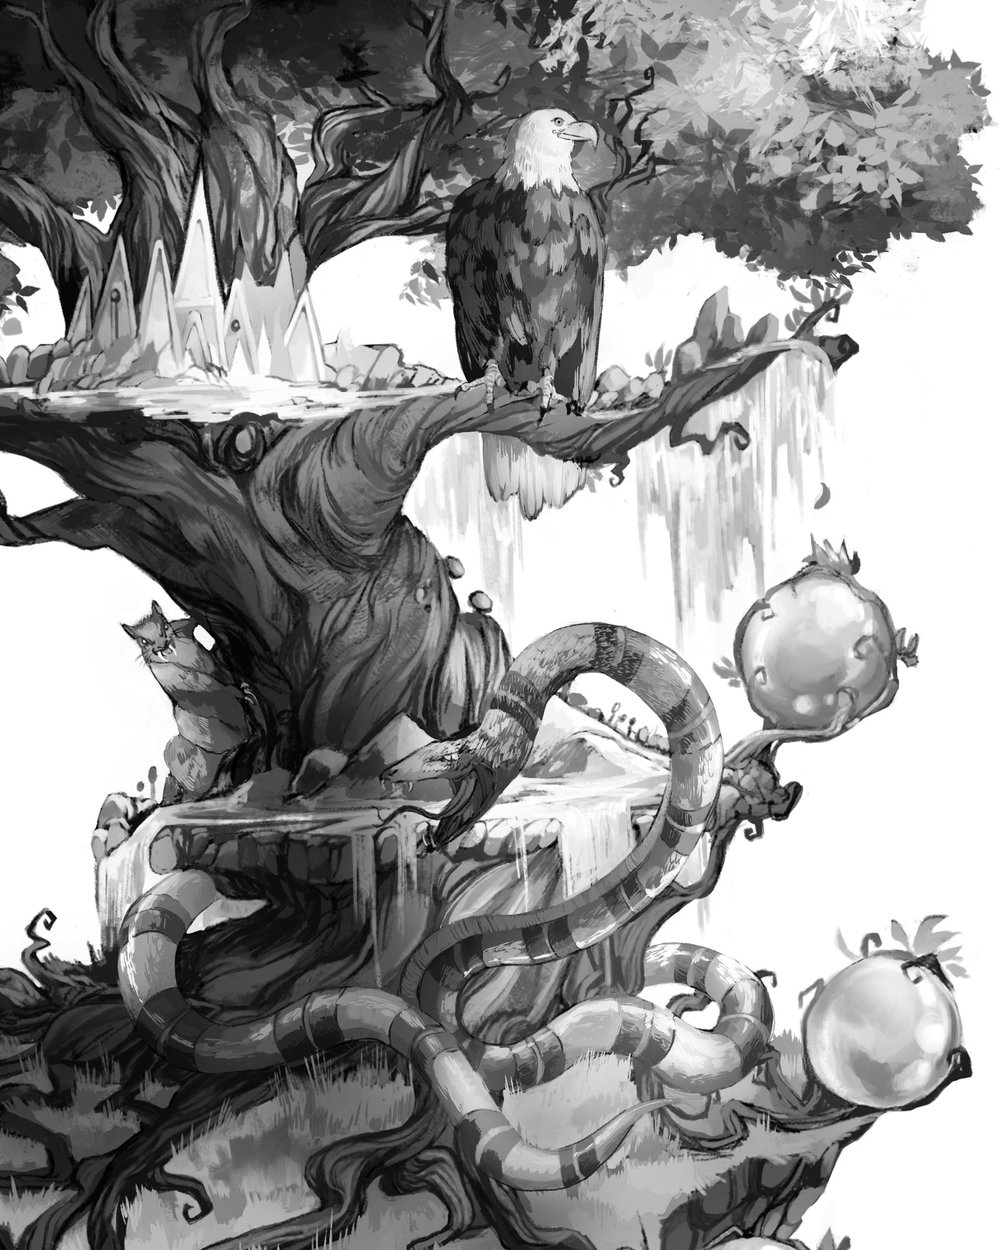 22_Nidhogg Ratatosk and Eagle Combined in Yggdrasil.jpg